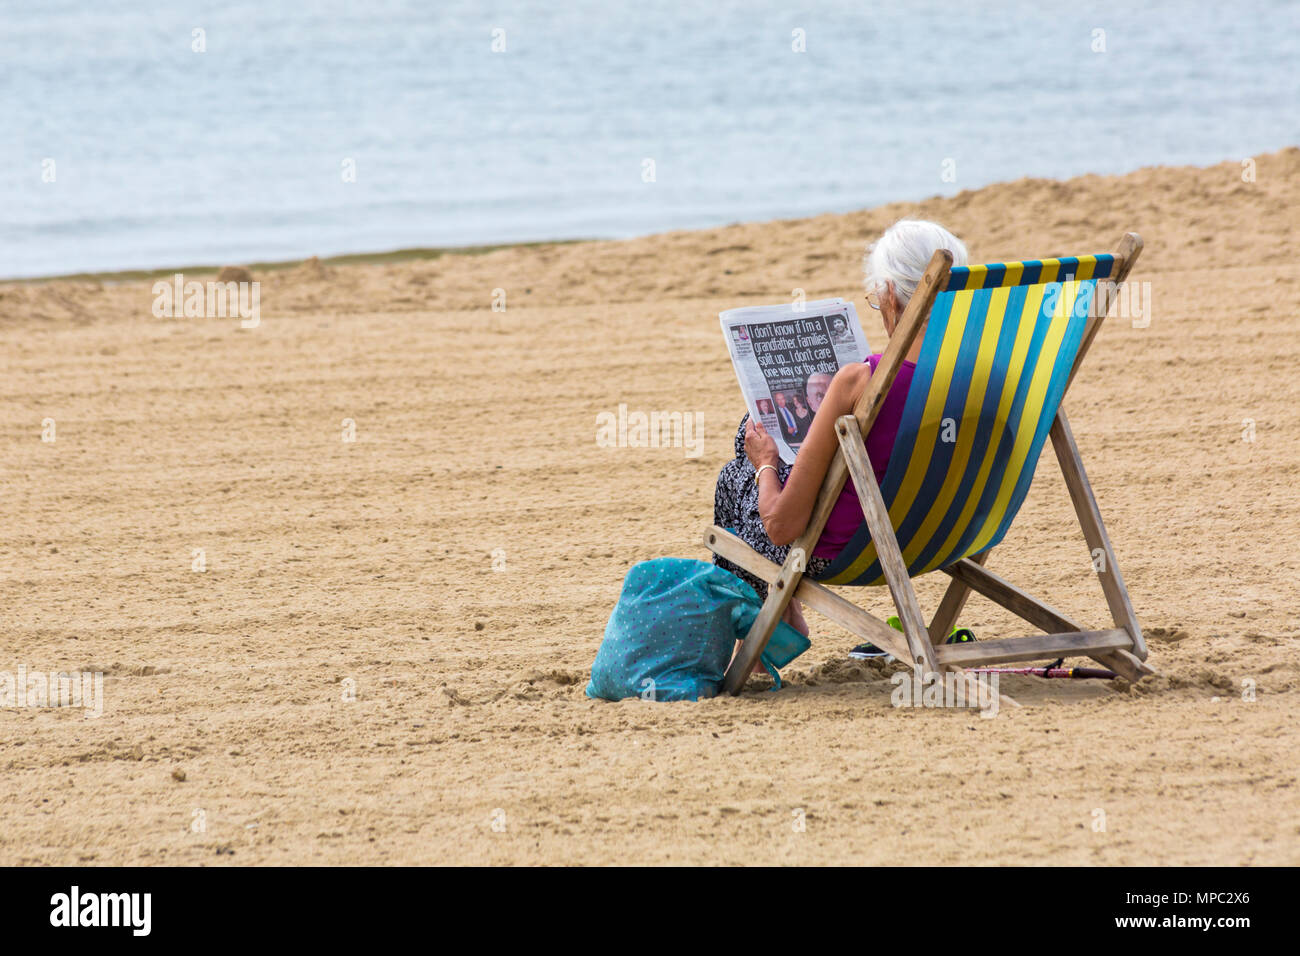 Bournemouth, Dorset, UK. 22nd May 2018. UK weather: after a cloudy overcast start to the day the sun returns and visitors head to the beach to enjoy the sunshine. Woman reads newspaper in deckchair. Credit: Carolyn Jenkins/Alamy Live News - Stock Image